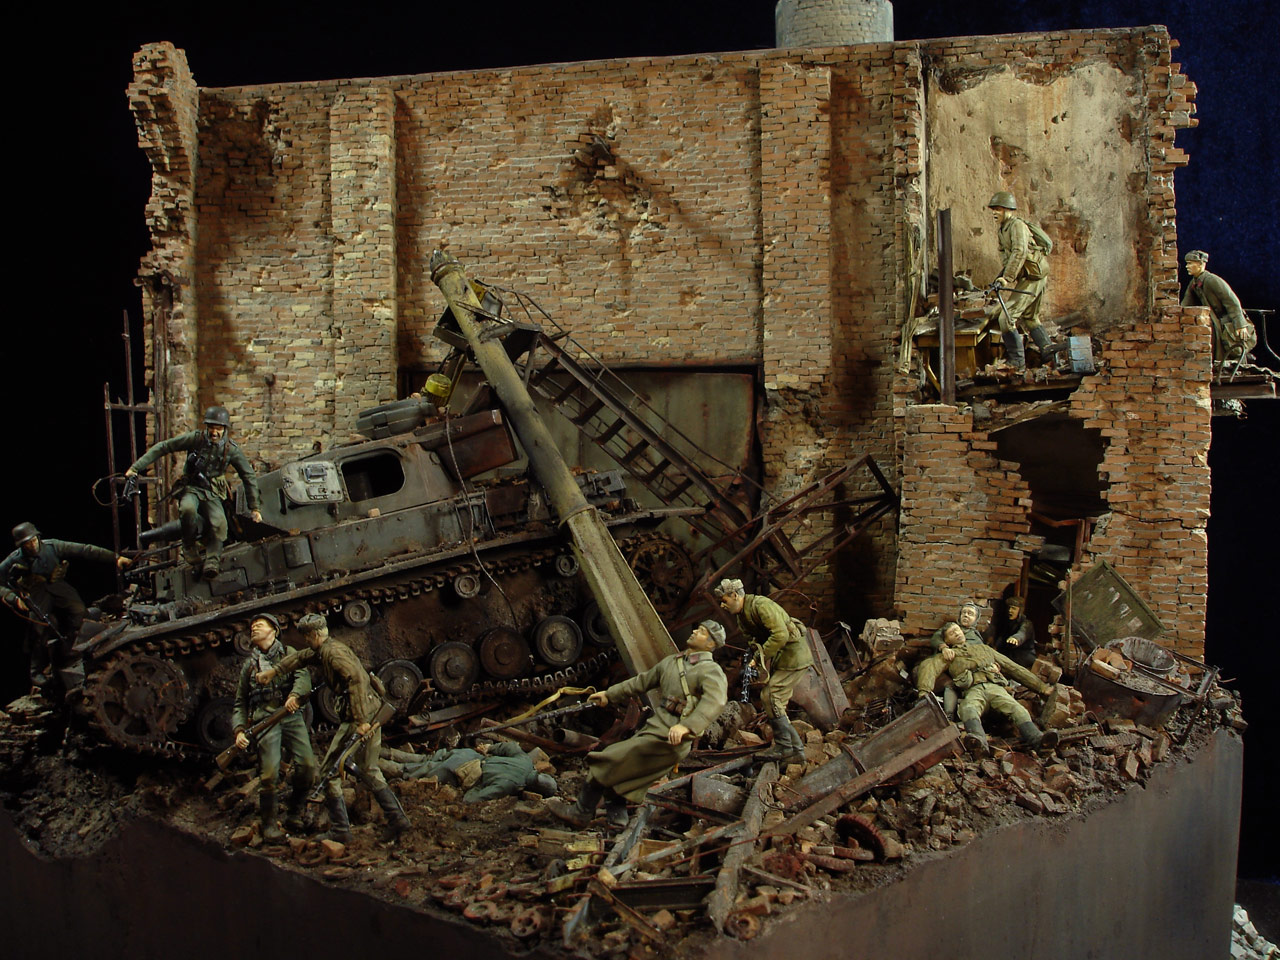 Stalingrad - Berlin: Double model of two moments of World War II - 06